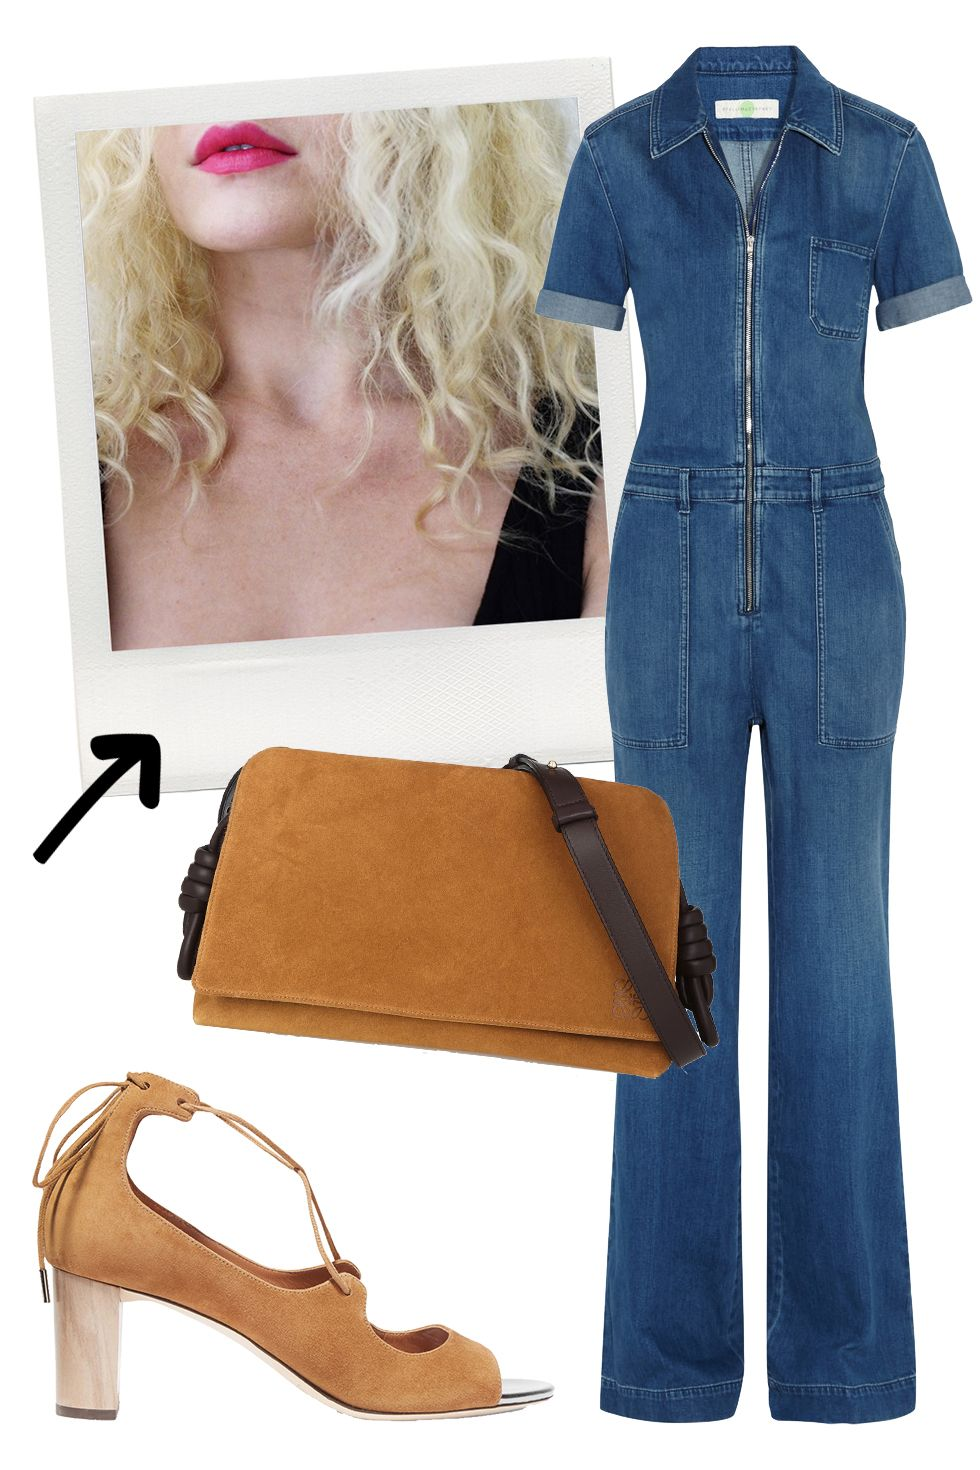 "<p>I find that being more adventurous with my look is an excellent way to weed out basics. If you can't get down with a denim jumpsuit and fluffy curls, you're not my cup of tea.</p><p><em>Stella McCartney Jumpsuit, $954&#x3B; <a href=""https://www.net-a-porter.com/us/en/product/645578/Stella_McCartney/stretch-denim-jumpsuit"" target=""_blank"">net-a-porter.com</a>&#x3B; Jimmy Choo Vernie Suede Sandals, $750&#x3B; <a href=""https://www.net-a-porter.com/us/en/product/655139/Jimmy_Choo/vernie-suede-sandals"" target=""_blank"">net-a-porter.com</a>&#x3B; Loewe Flamenco Bag, $1,950&#x3B; <a href=""https://www.net-a-porter.com/us/en/product/607397/Loewe/flamenco-flap-leather-and-suede-shoulder-bag"" target=""_blank"">net-a-porter.com</a>. </em></p>"